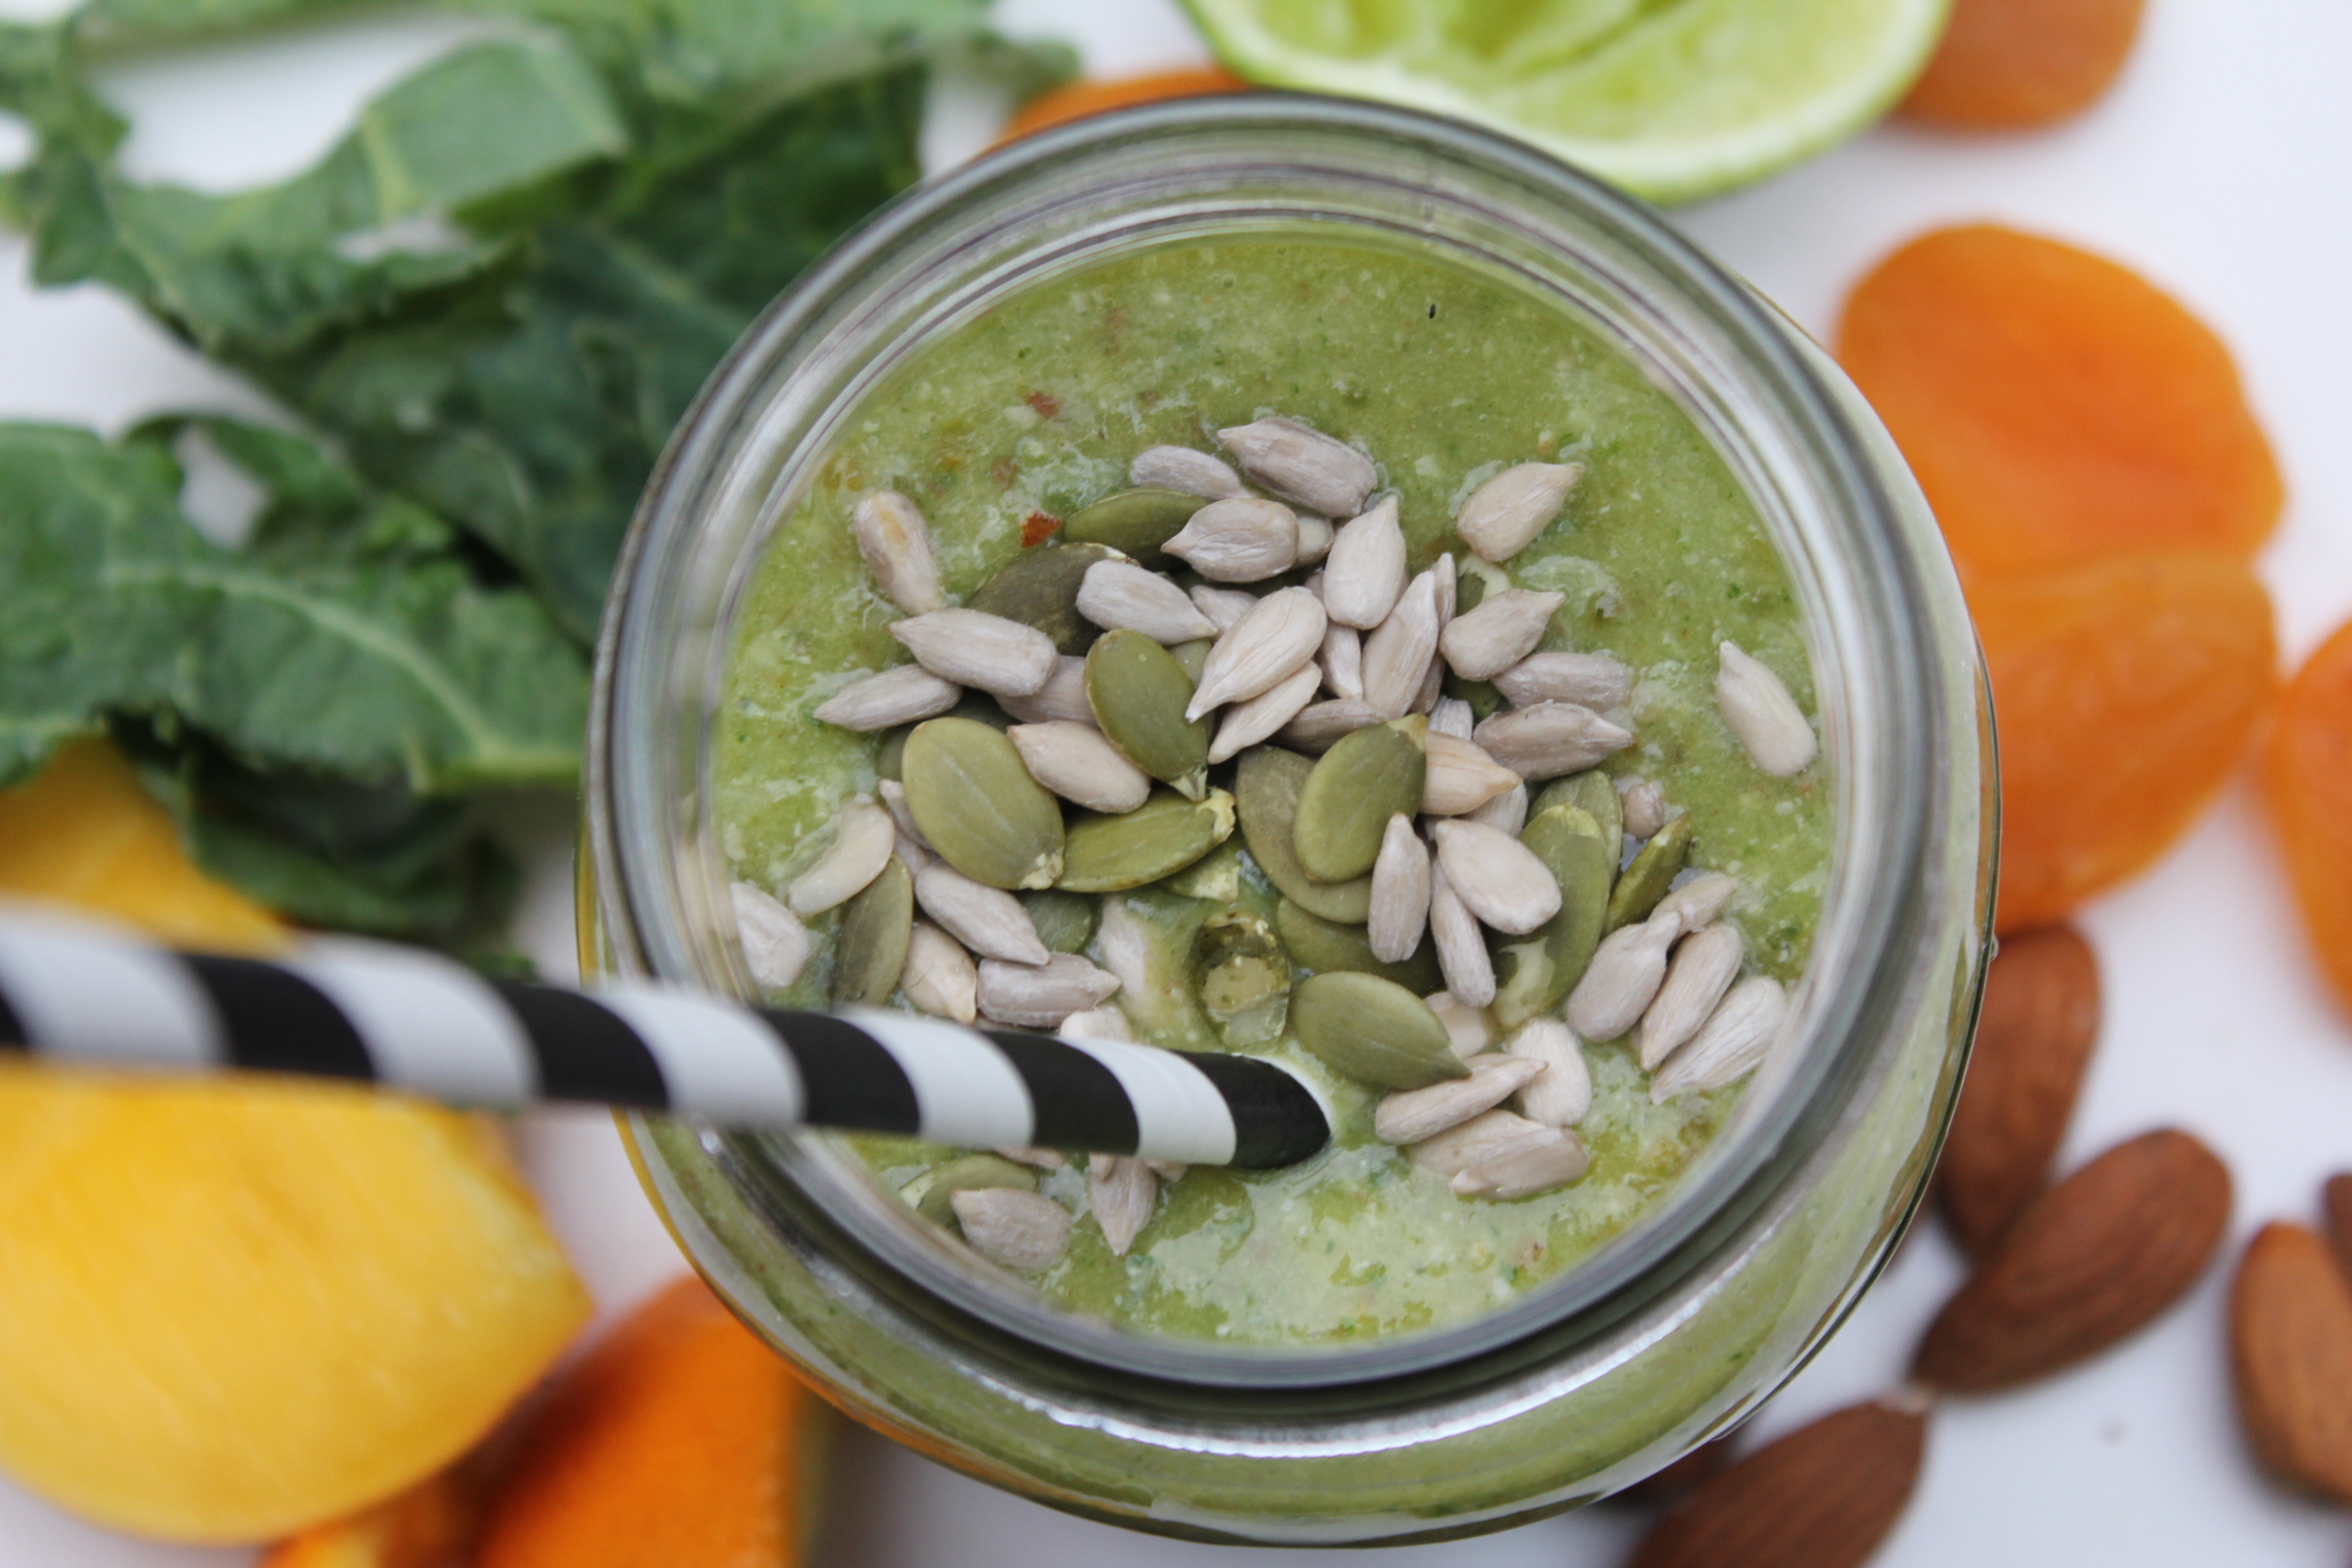 Iron and vitamin C rich smoothie